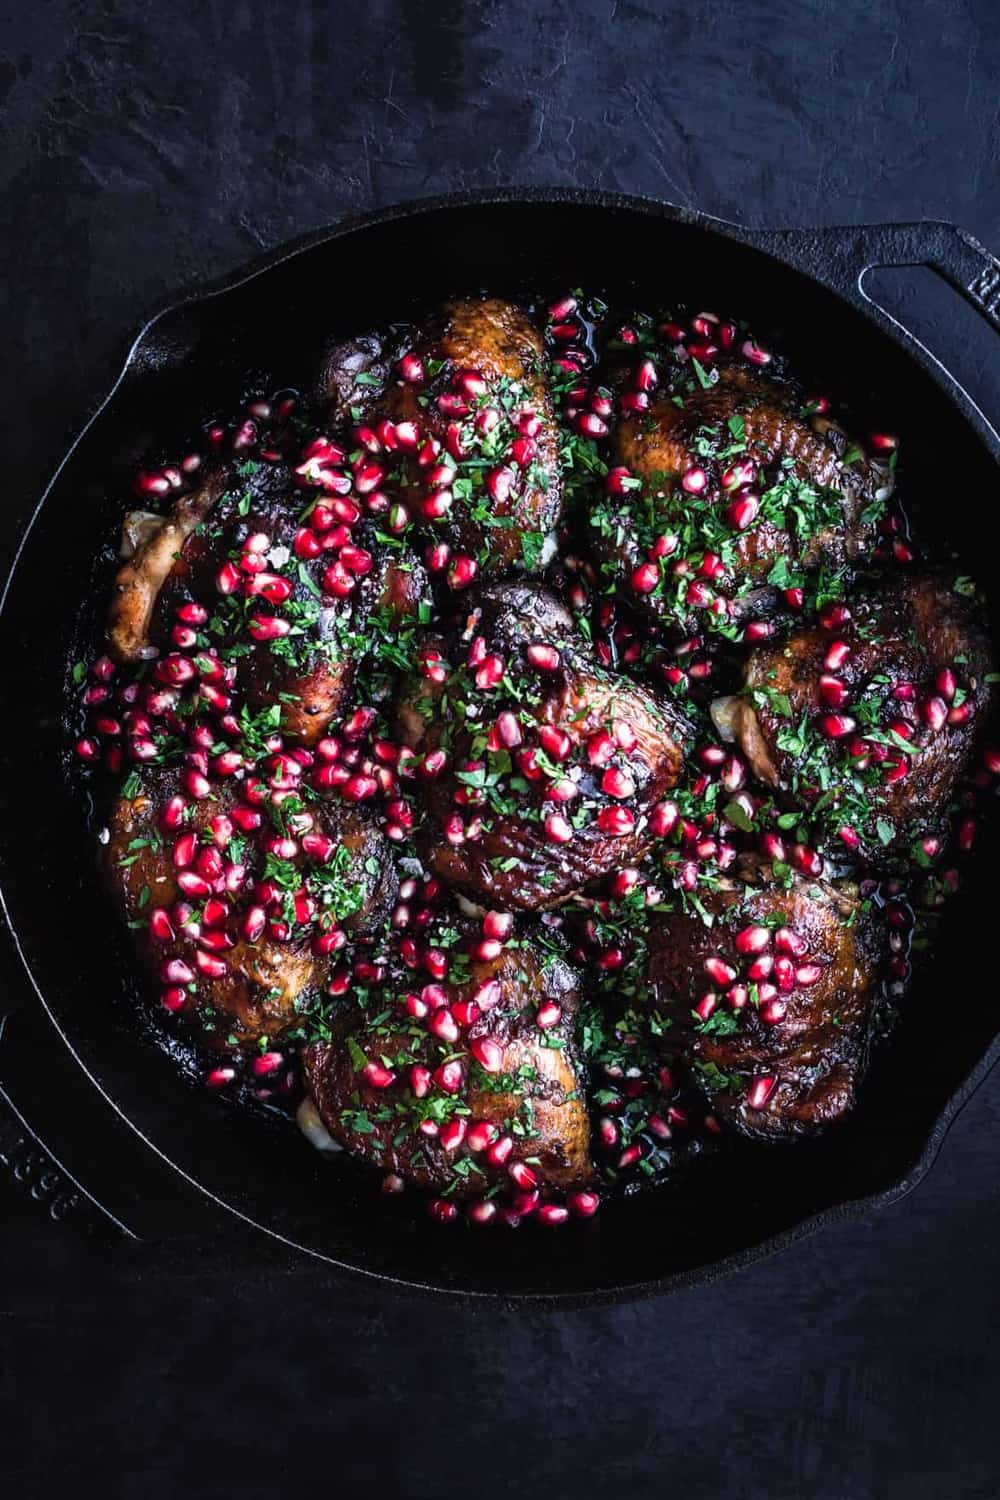 Pomegranate Skillet Chicken, out of the oven and all done, in a cast iron skillet on a black background. Over head and center frame shot.